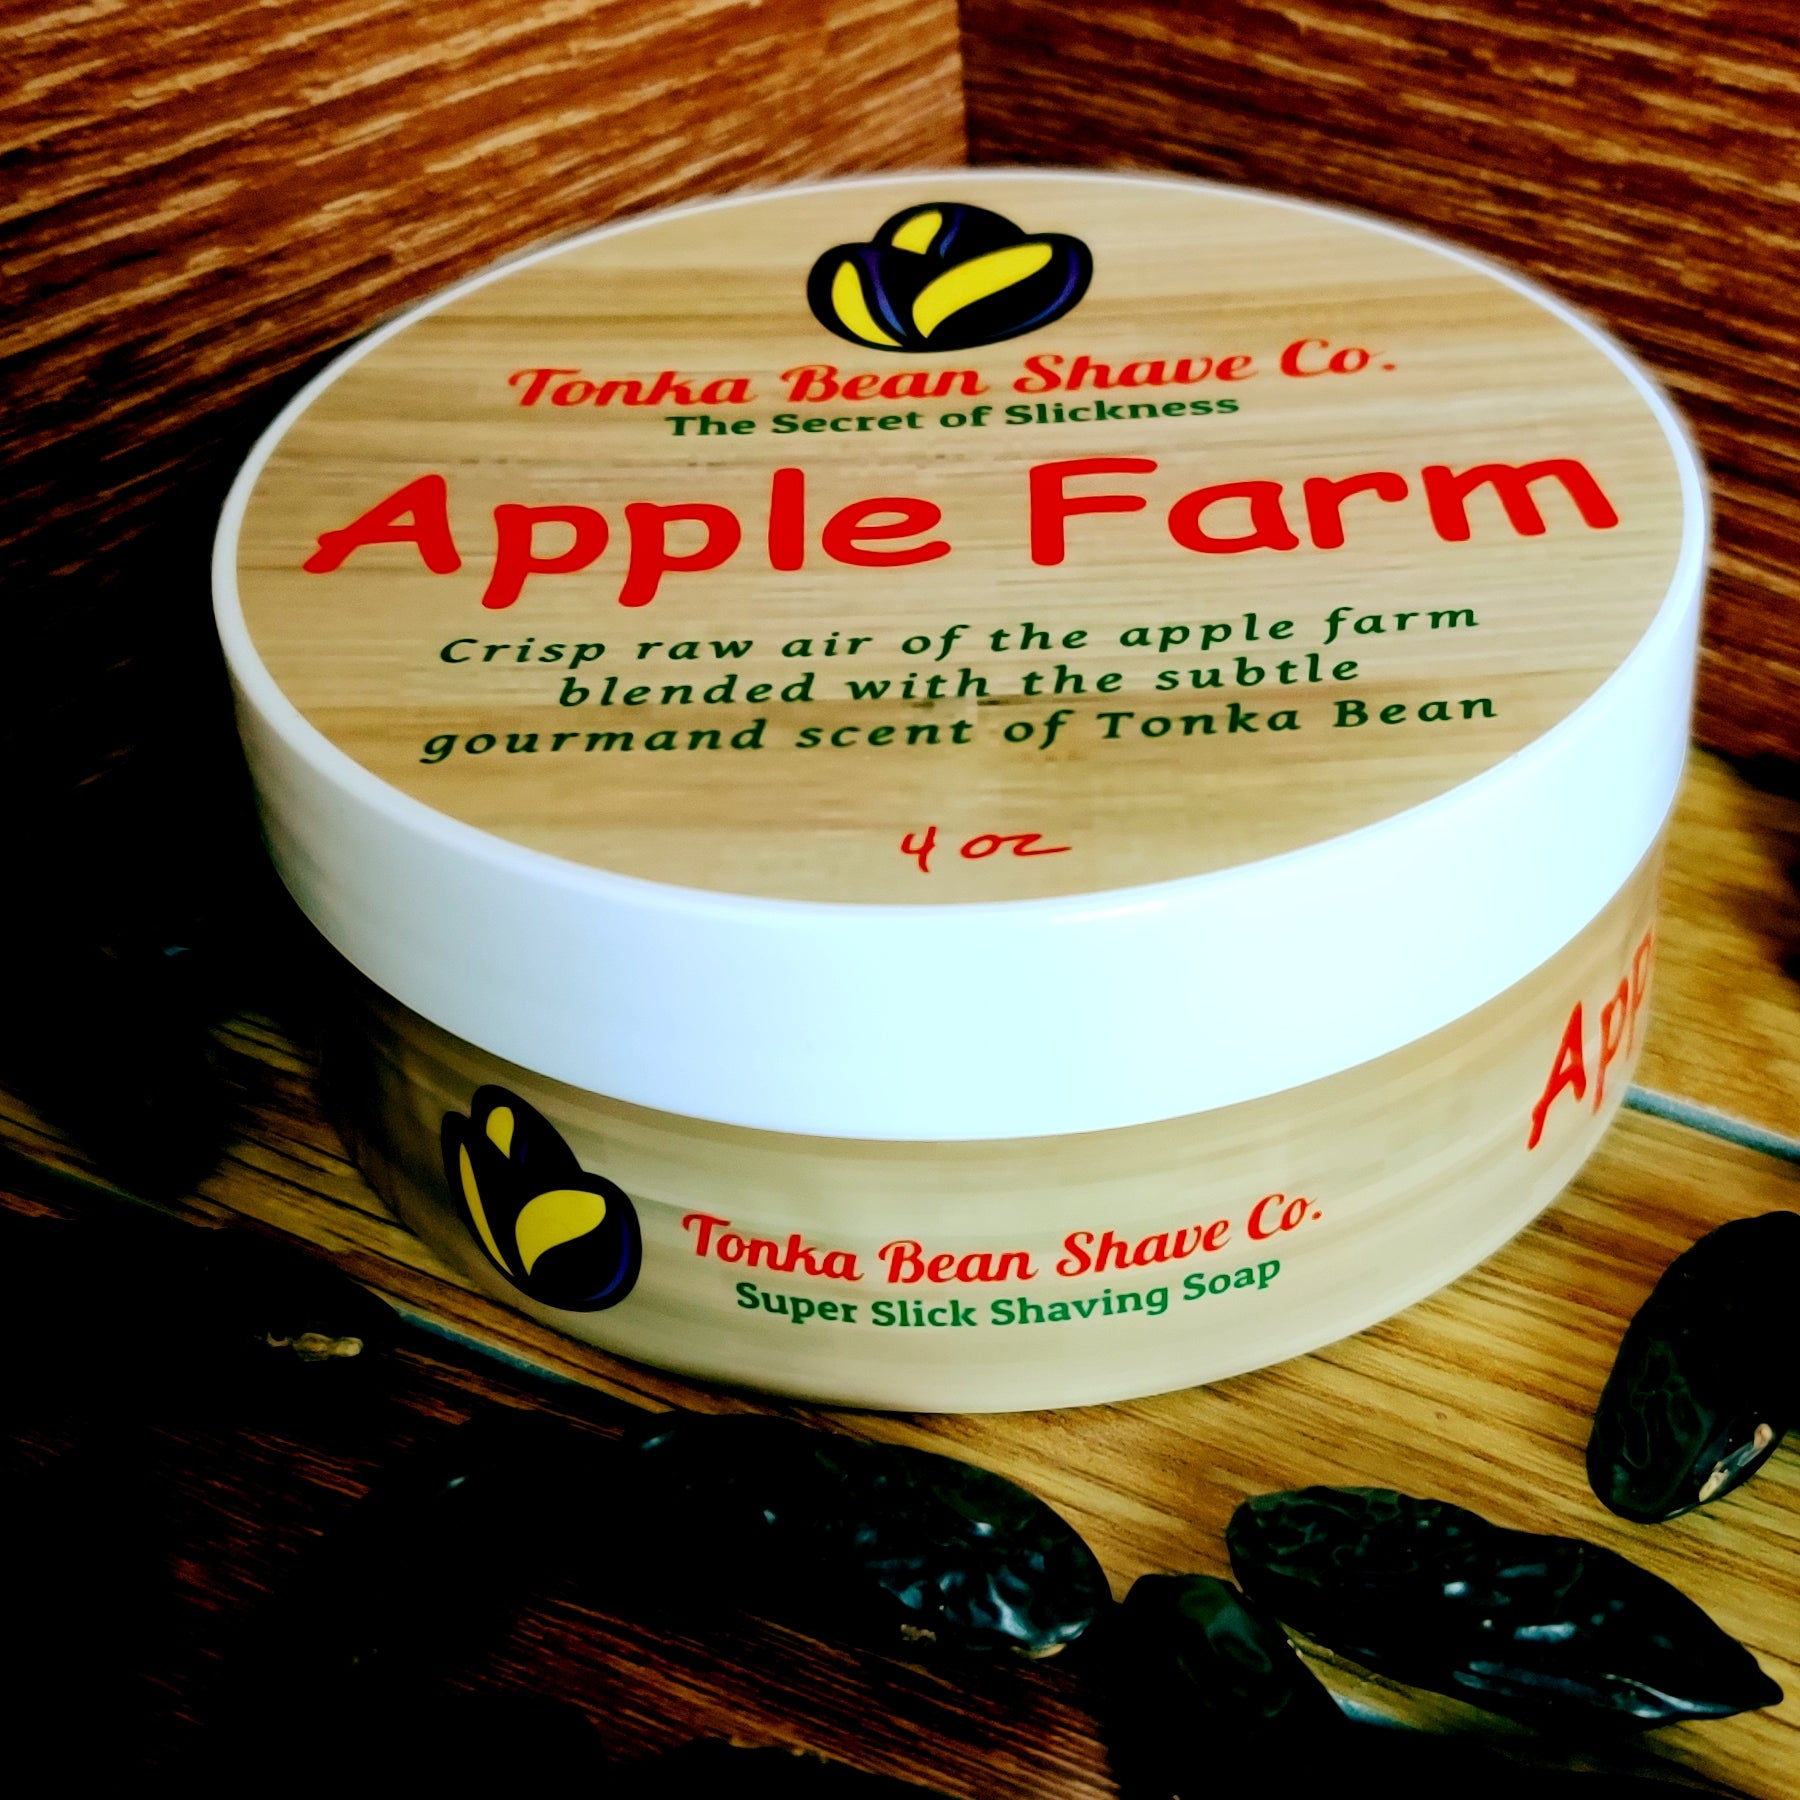 Apple Farm Shaving Soap